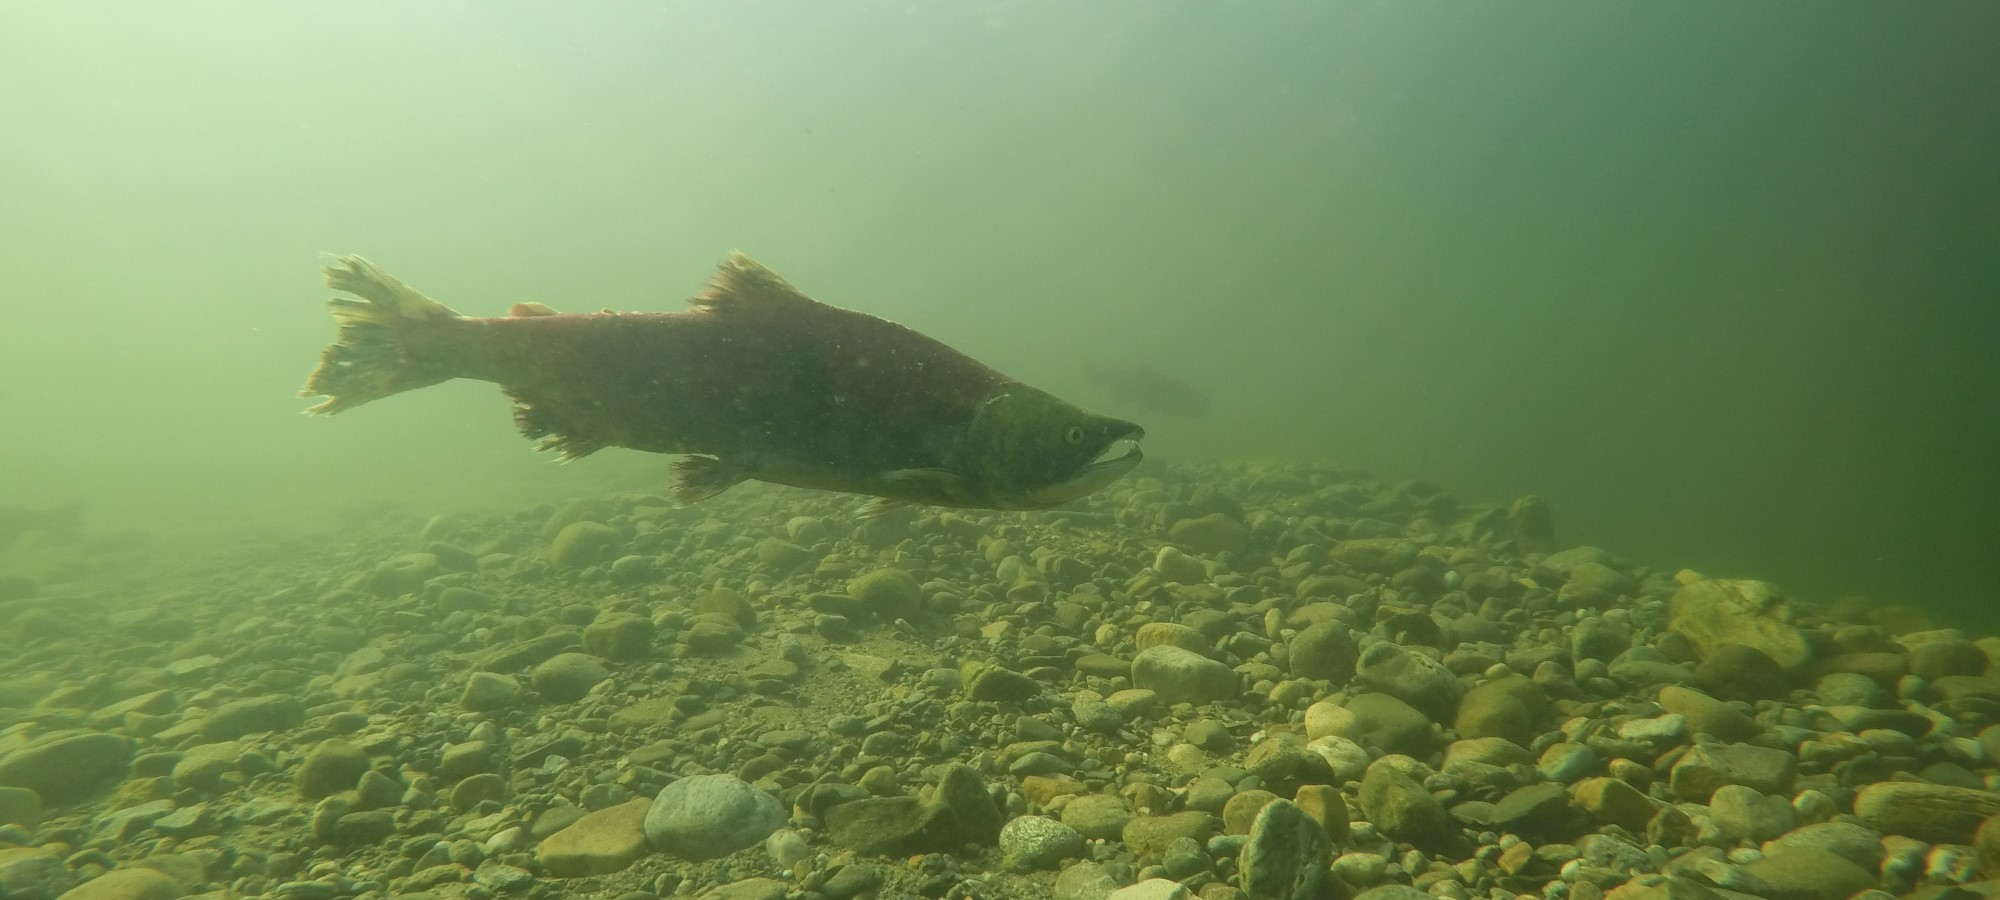 Tsútswecw Provincial Park on Shuswap Lake, BC: Come for the Salmon Spawning & the Fall Colours